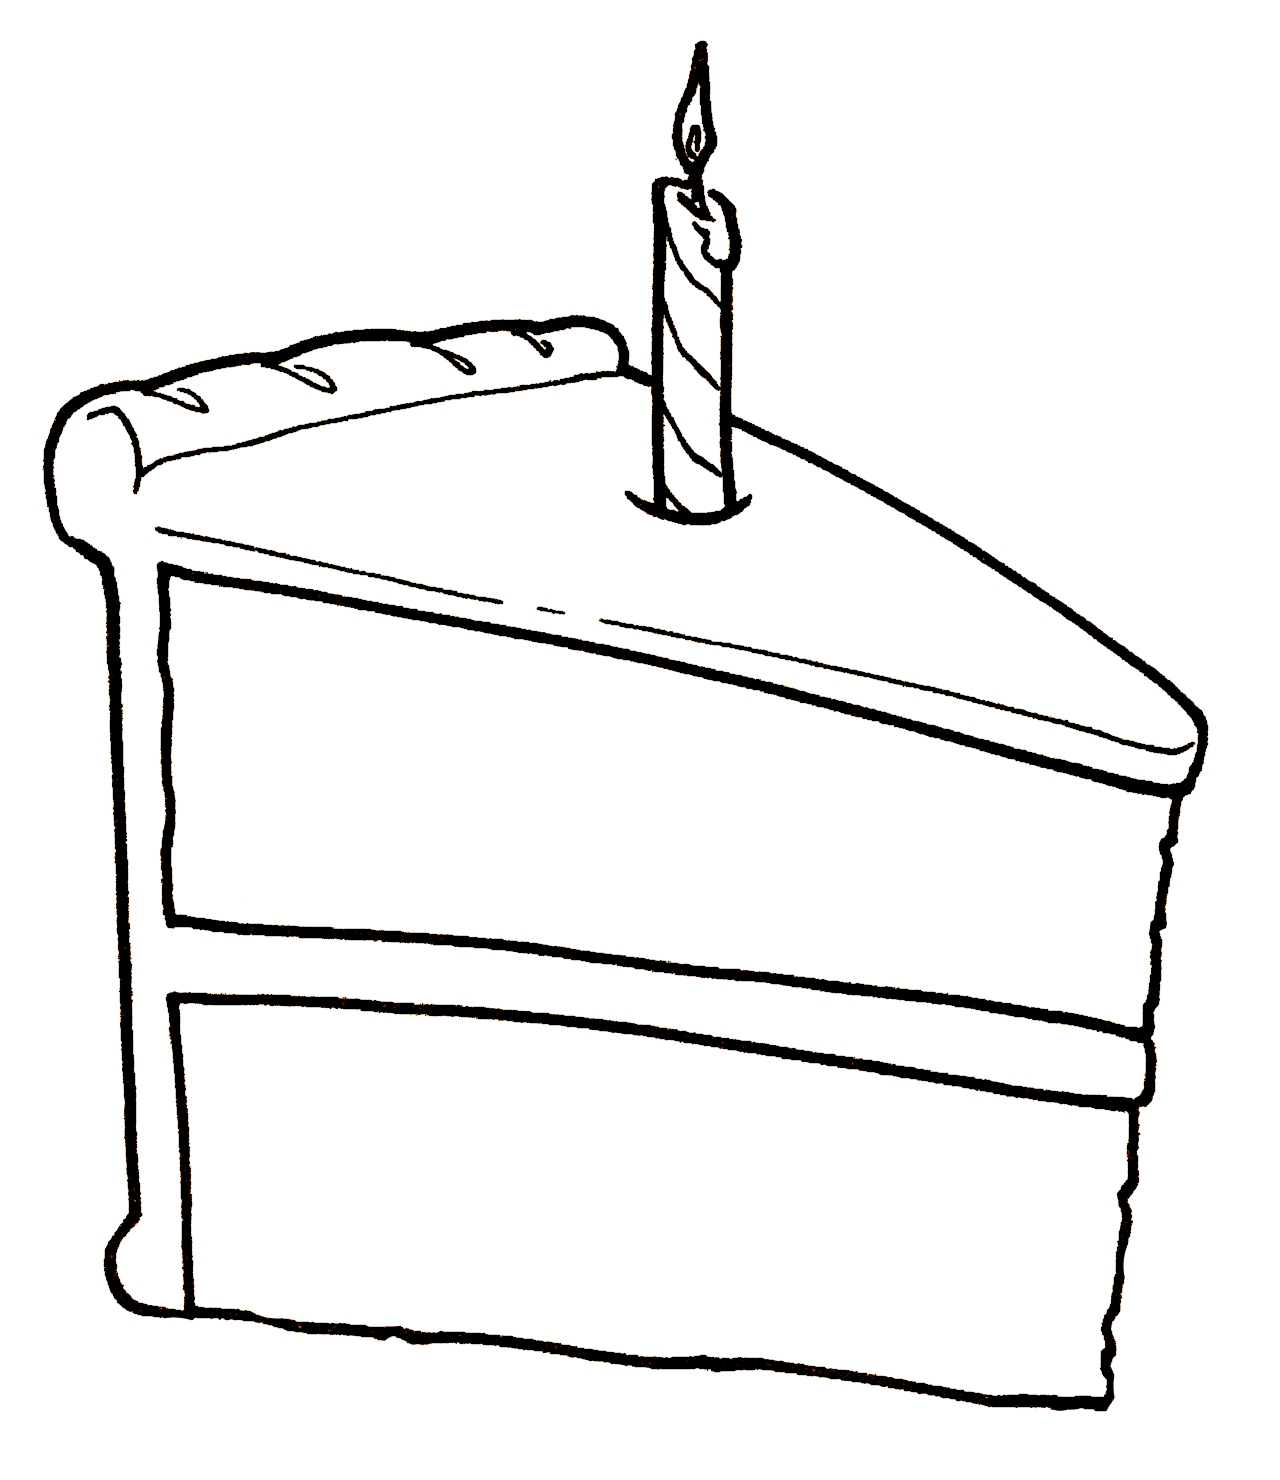 simple birthday cake drawing ; simple-birthday-cake-drawing-simple-birthday-cake-drawing-the-best-sweet-moments-of-life-1